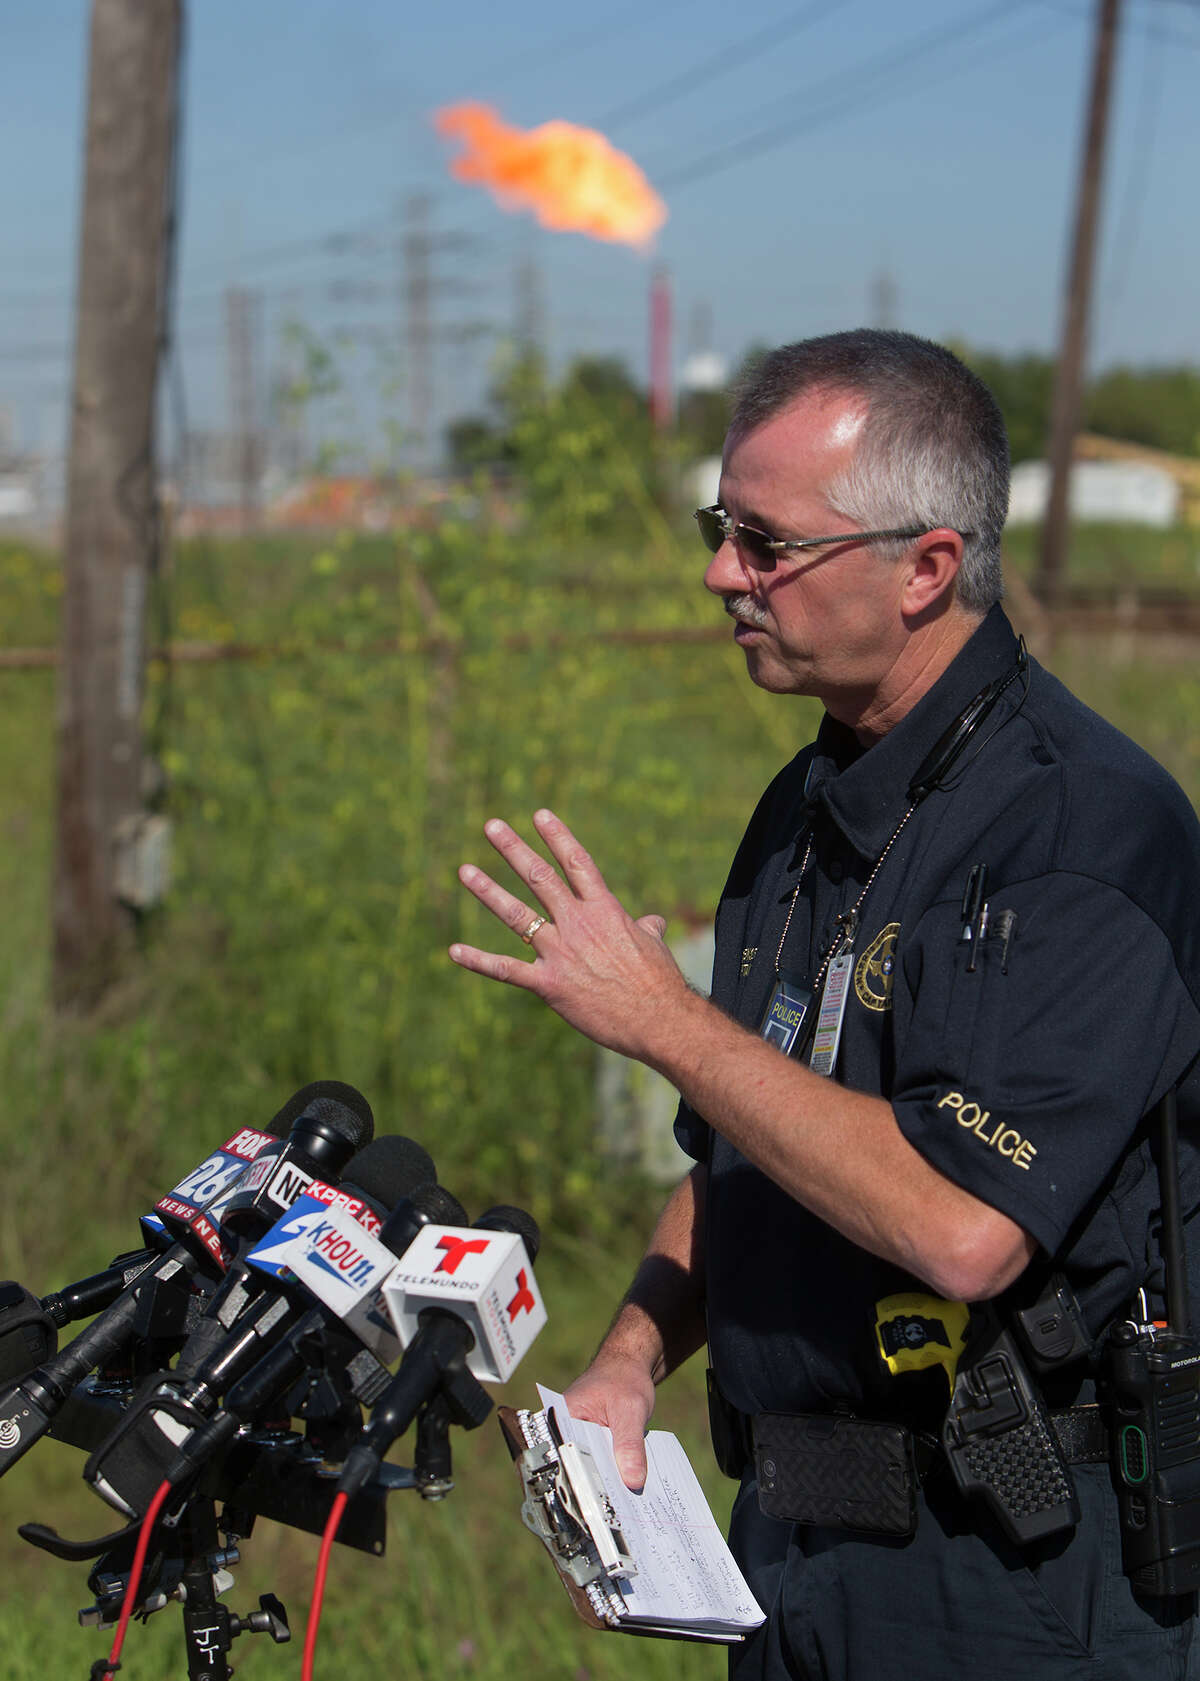 Capt. Dean Hensley of the Harris County Fire Marshal's Office speaks to the media during a news conference after four people were injured in a plant explosion at Sun Edison chemical plant in Pasadena, Friday, Oct. 2, 2015.